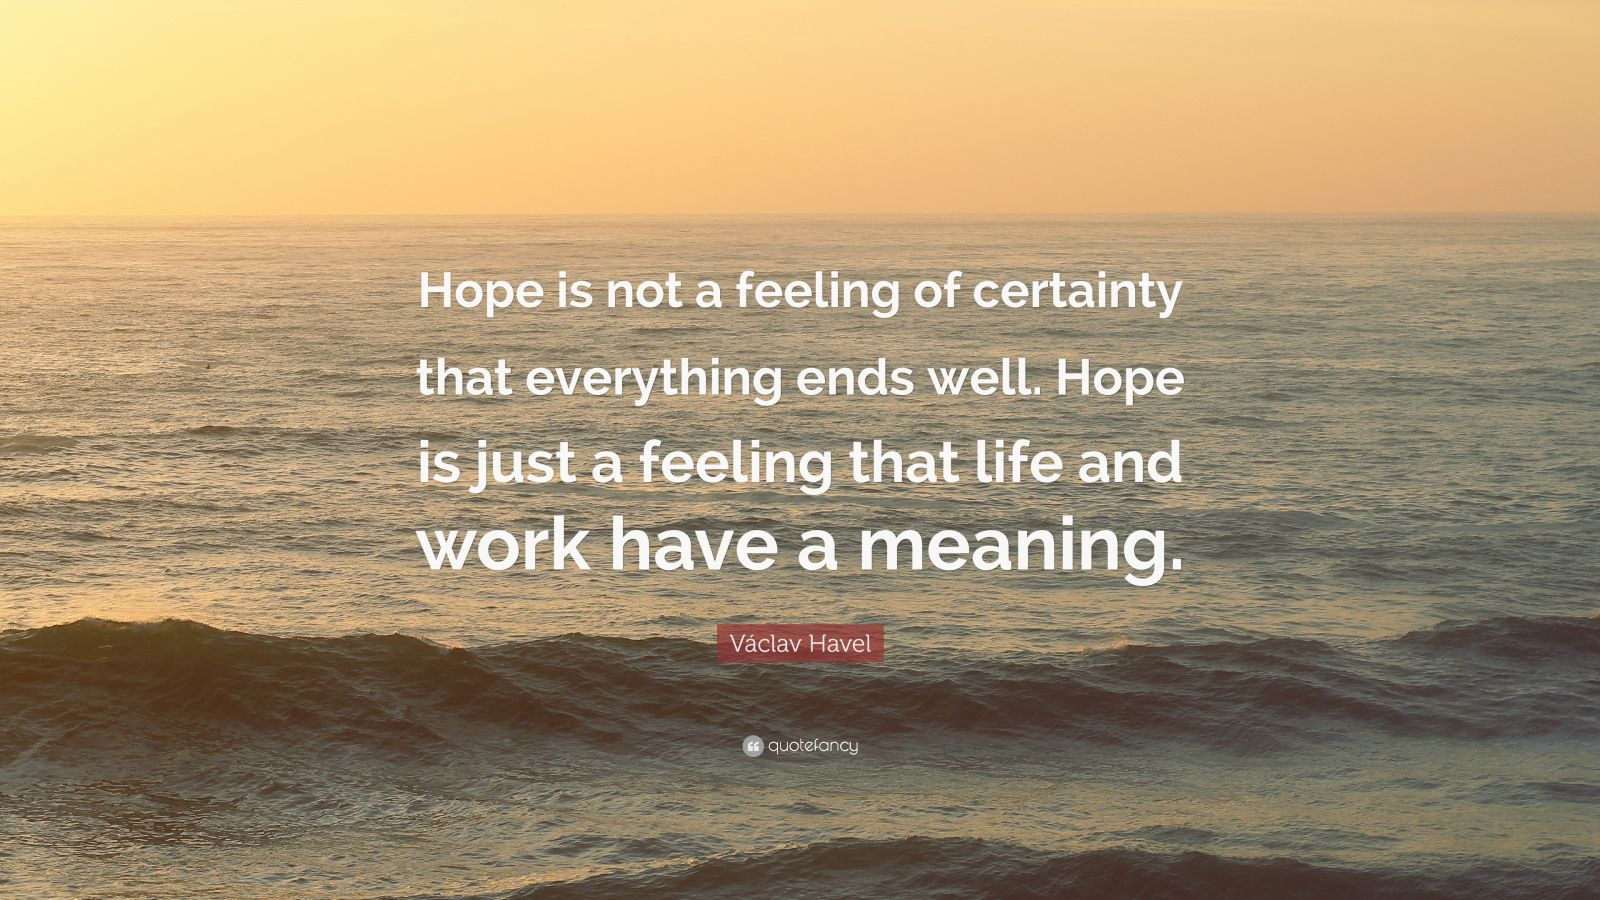 """Václav Havel Quote: """"Hope is not a feeling of certainty that everything ends well. Hope is just a feeling that life and work have a meaning."""""""